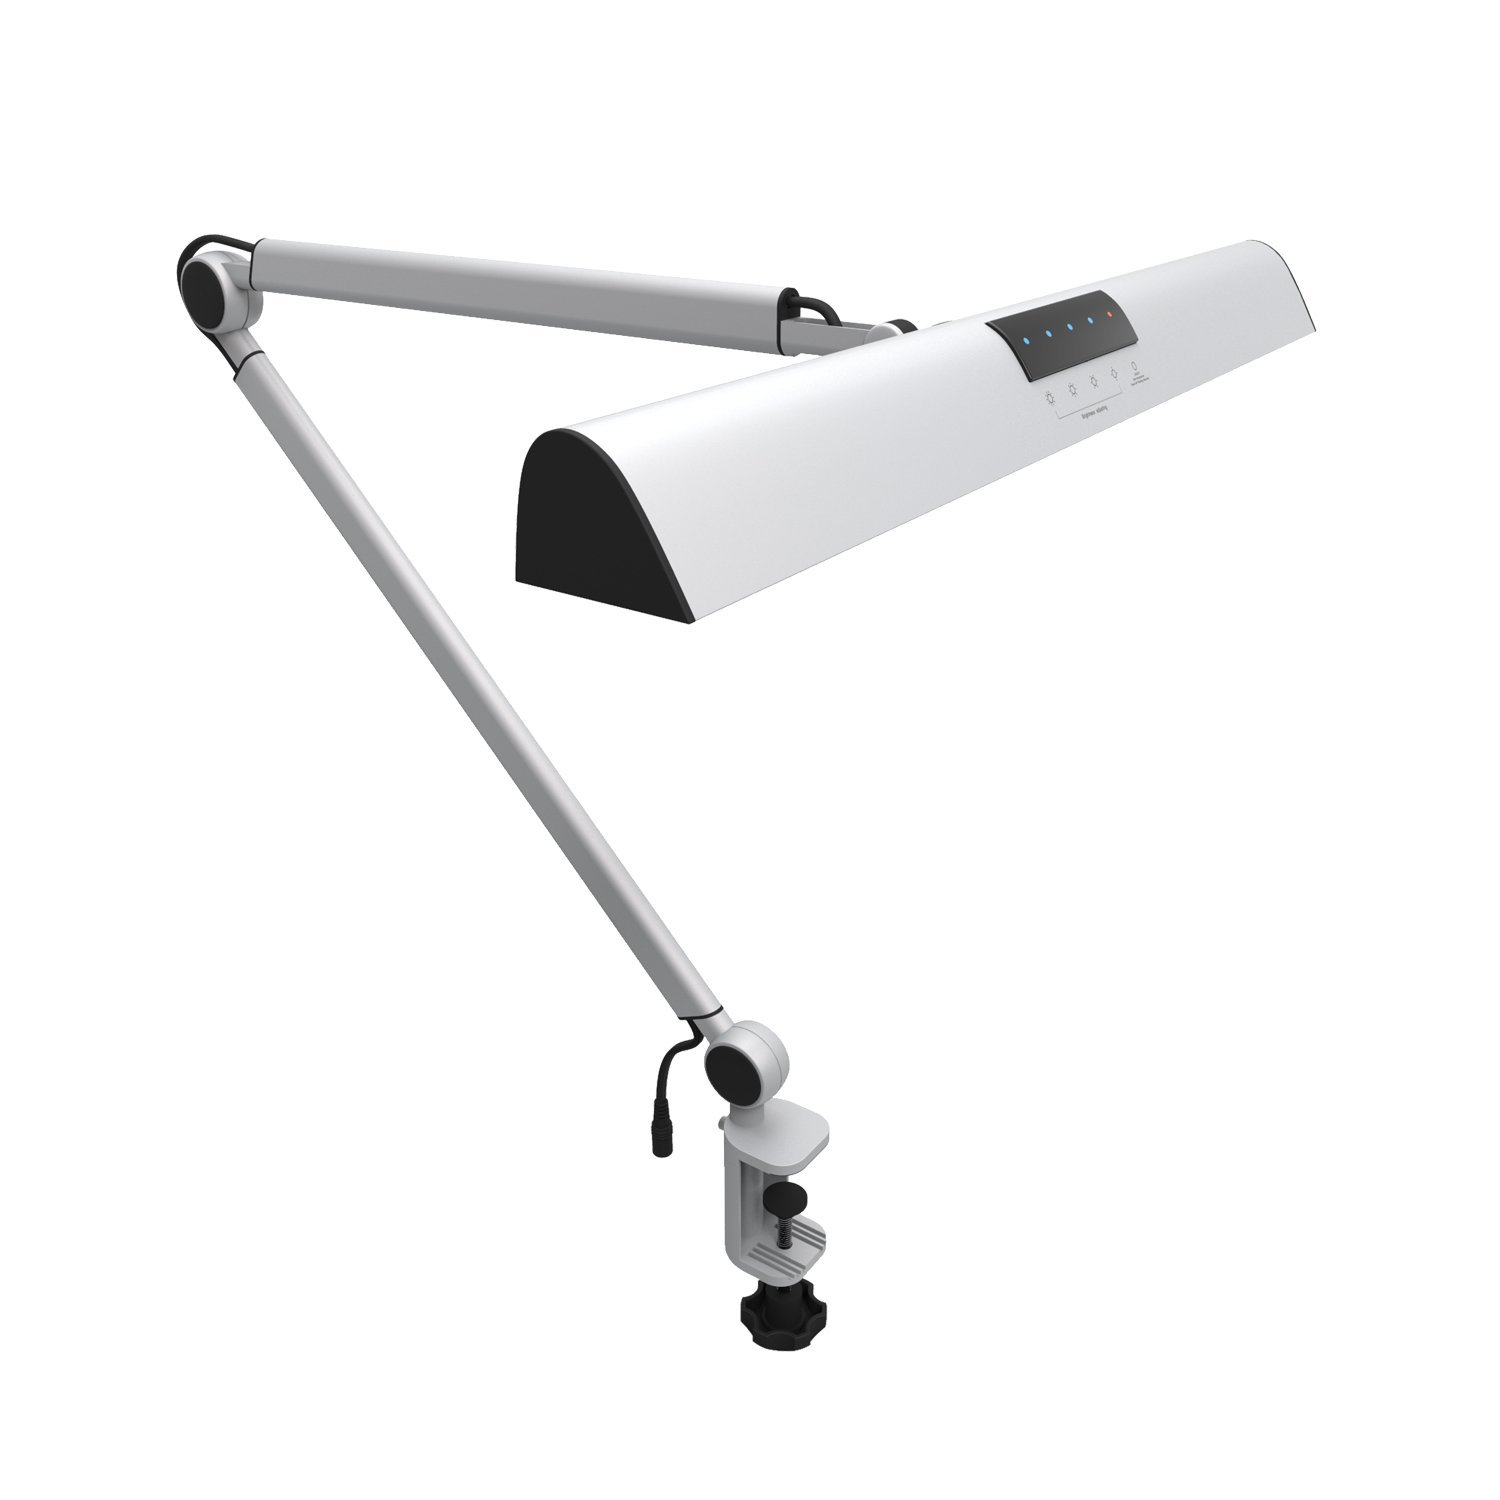 Led desk lamp clamp - A509 Led Swing Arm Architect Desk Lamp Clamp Touch Table Lamp For Reading Working Silver